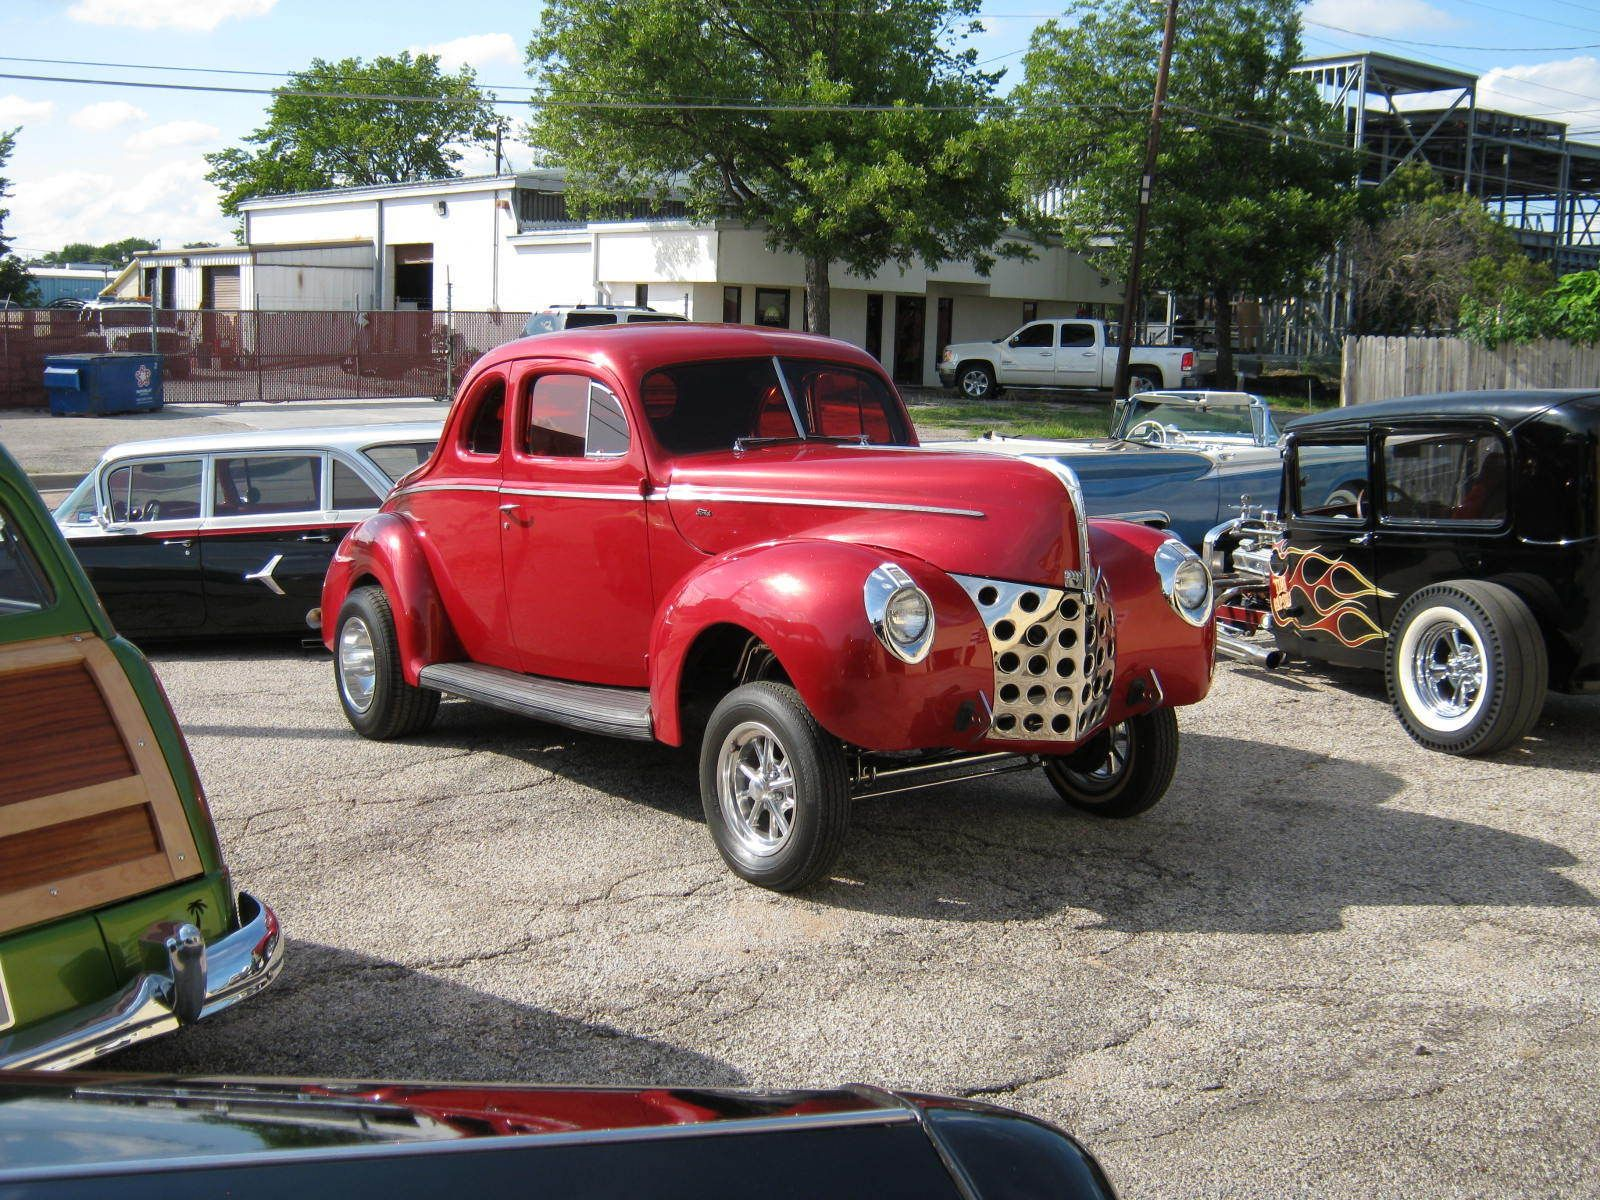 1940 Ford DELUXE COUPE HEMI GASSER!! STRAIGHT AXLE DISC